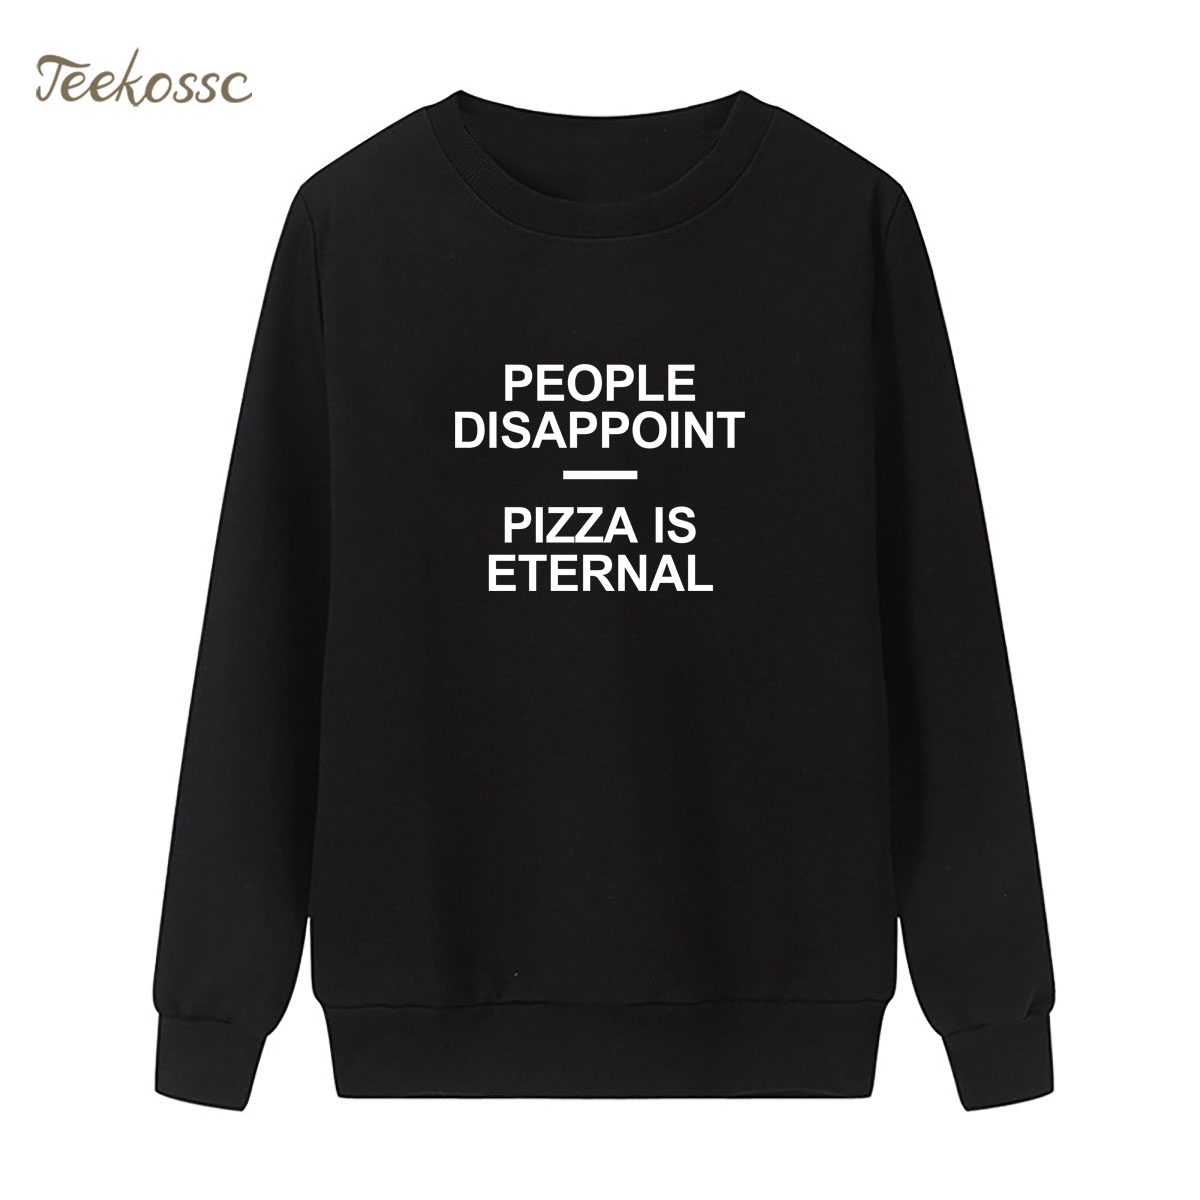 PEOPLE DISAPPOINT PIZZA ETERNAL Sweatshirt Casual Funny Hoodie 2018 Winter Autumn Women Lasdies Fleece Black White Streetwear